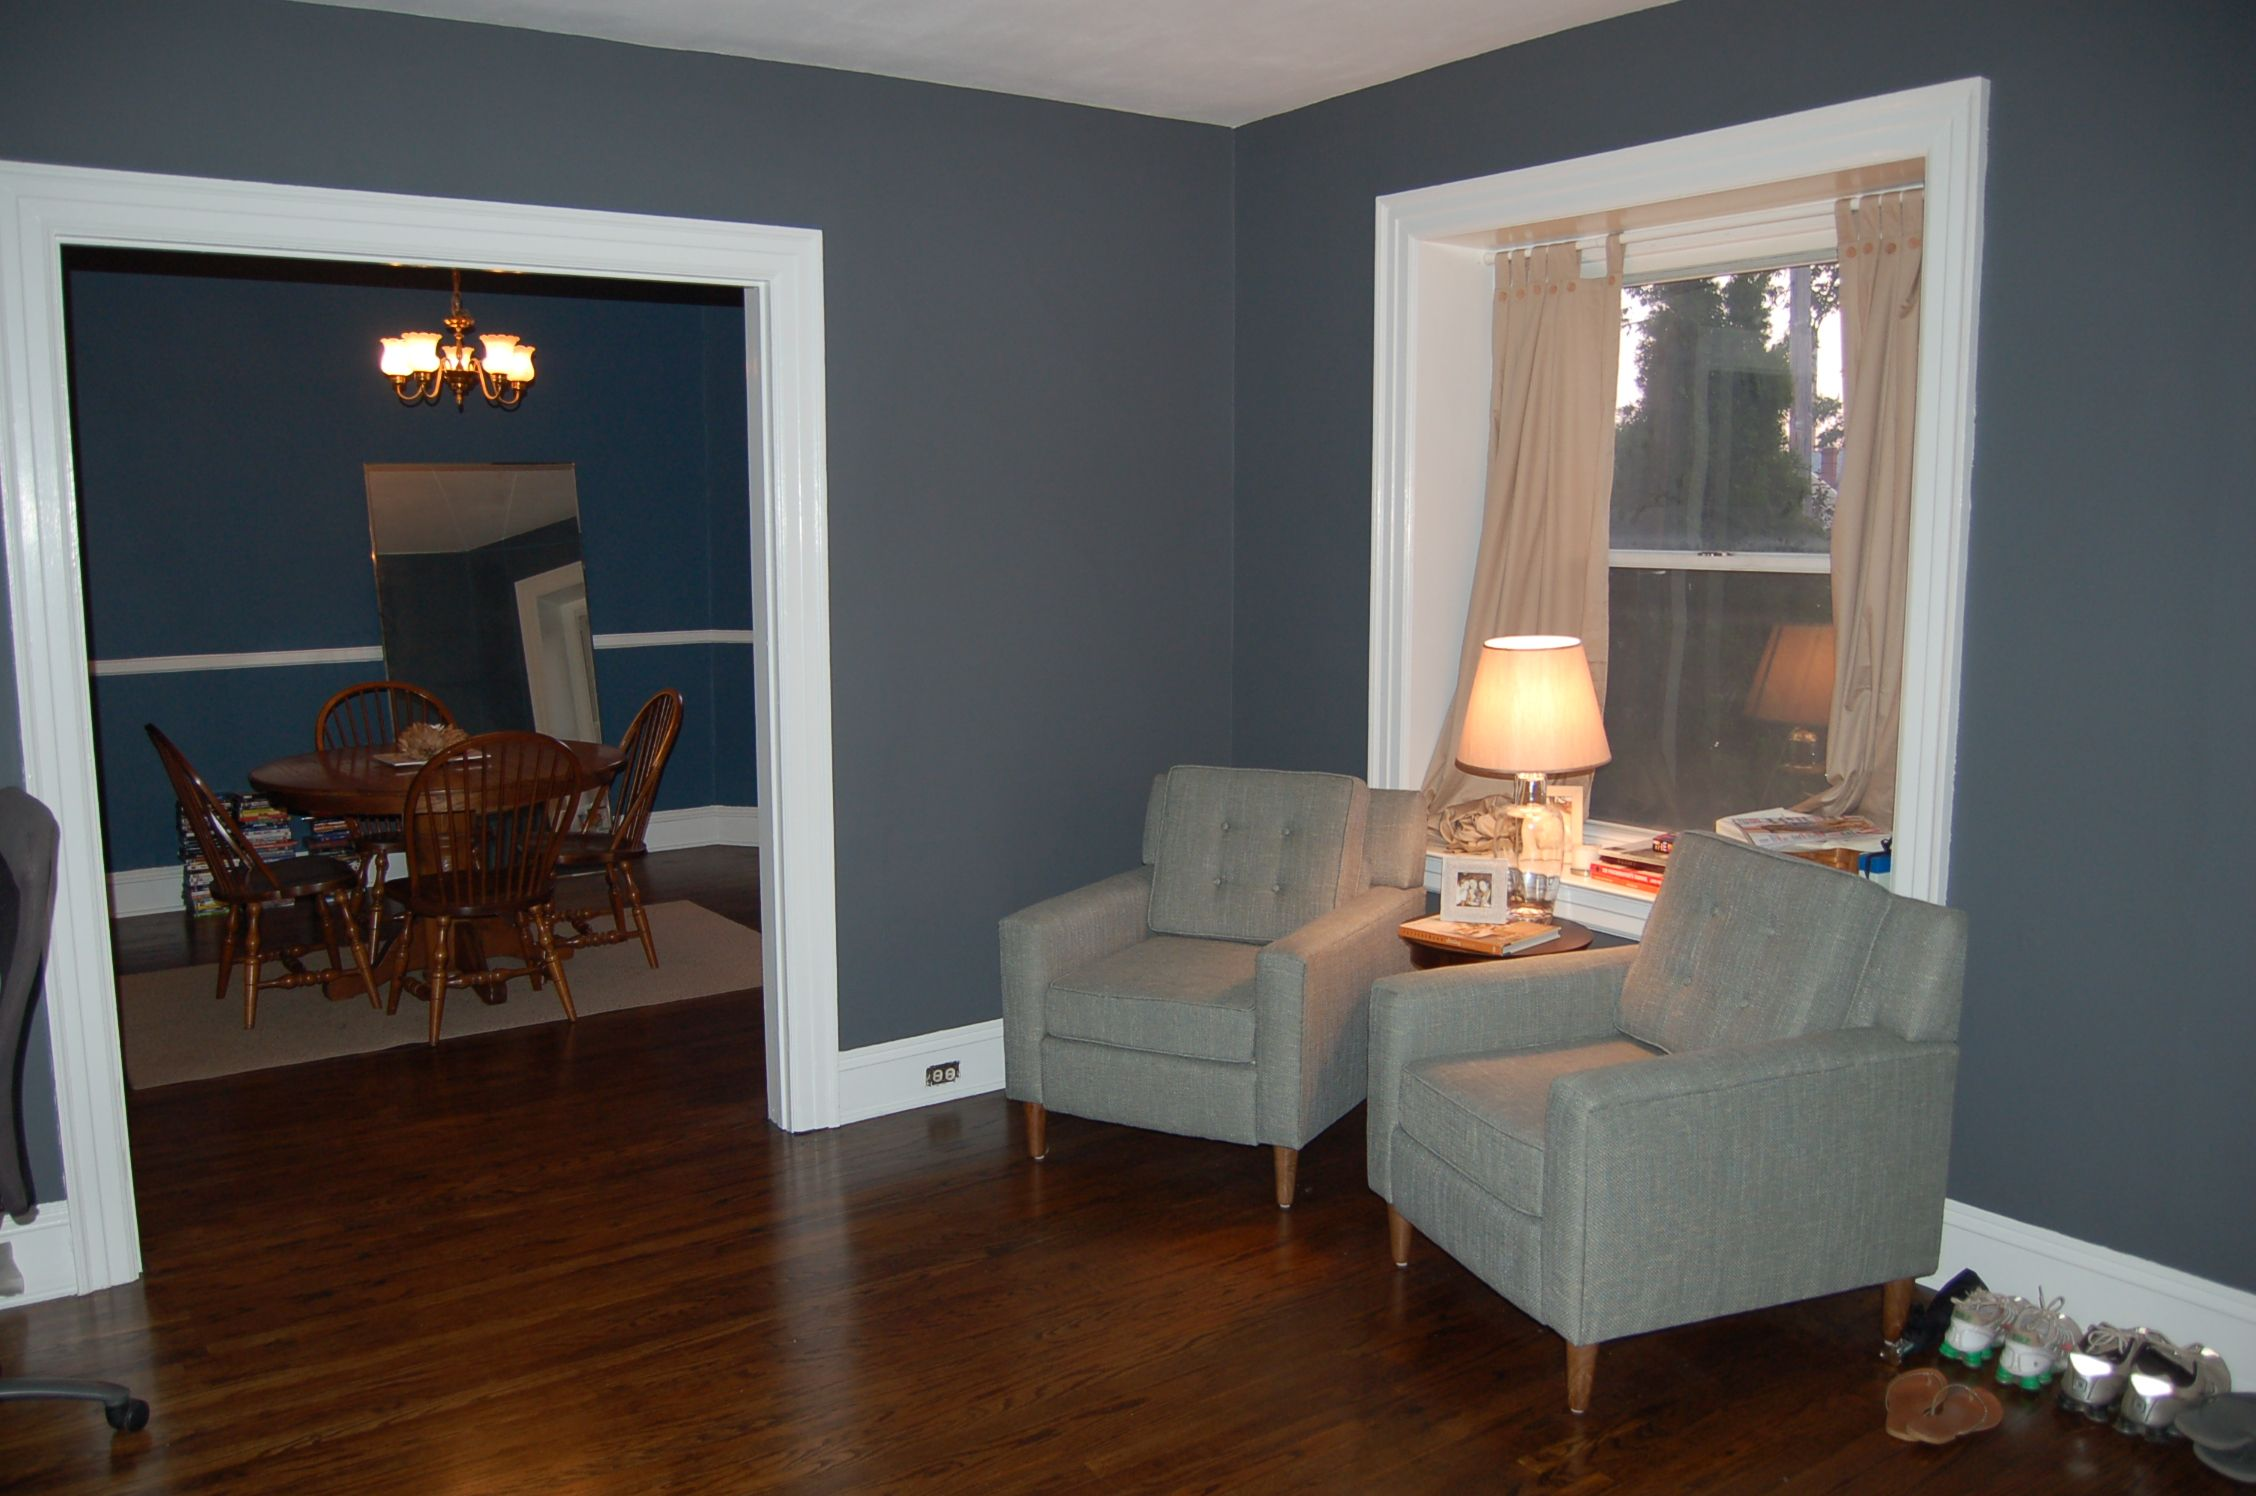 Fall the changing of colors a few times over interior - Paint colors for a dark living room ...